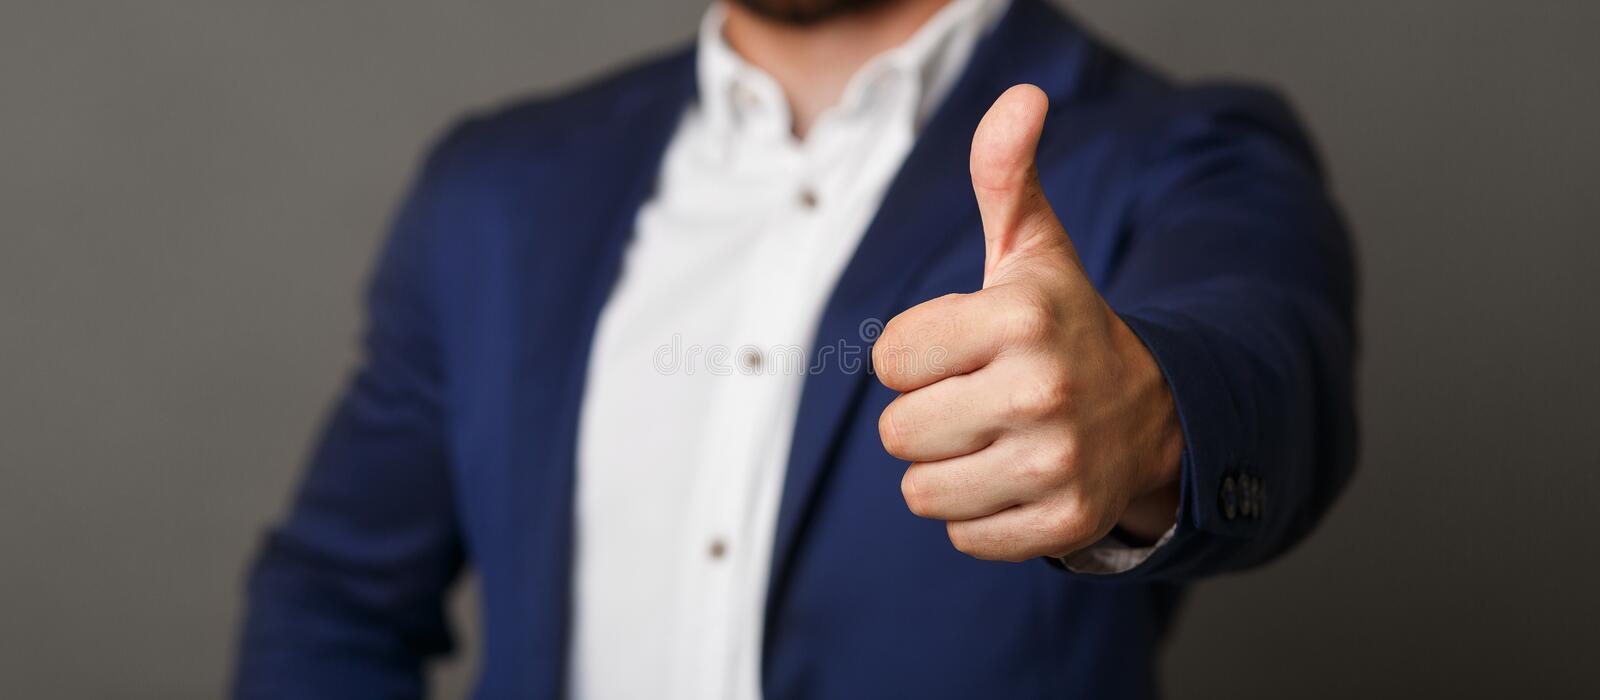 Unrecognizable businessman showing thumb up gesture panorama. Approved. Unrecognizable businessman showing thumb up gesture, panorama image stock photography